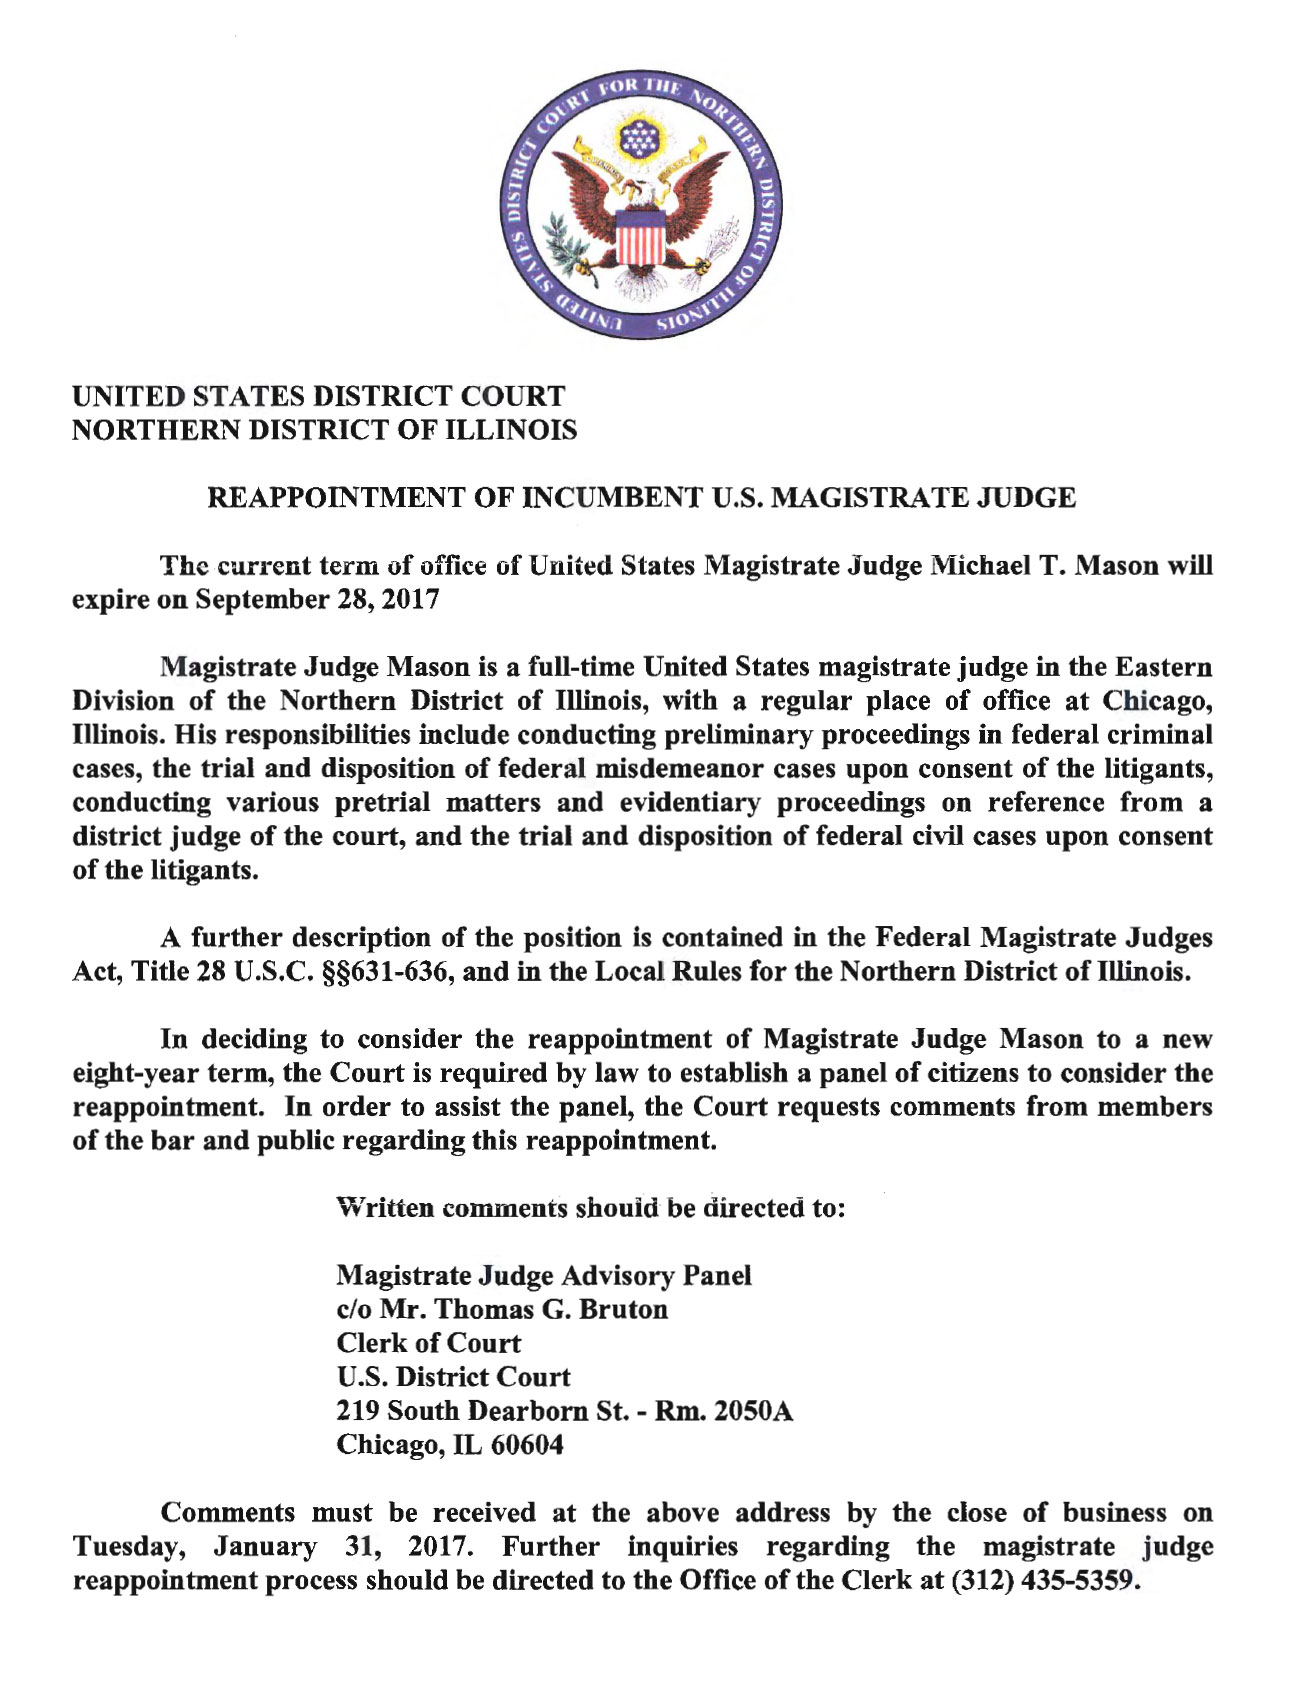 Reappointment of Magistrate Judge Michael P. Mason